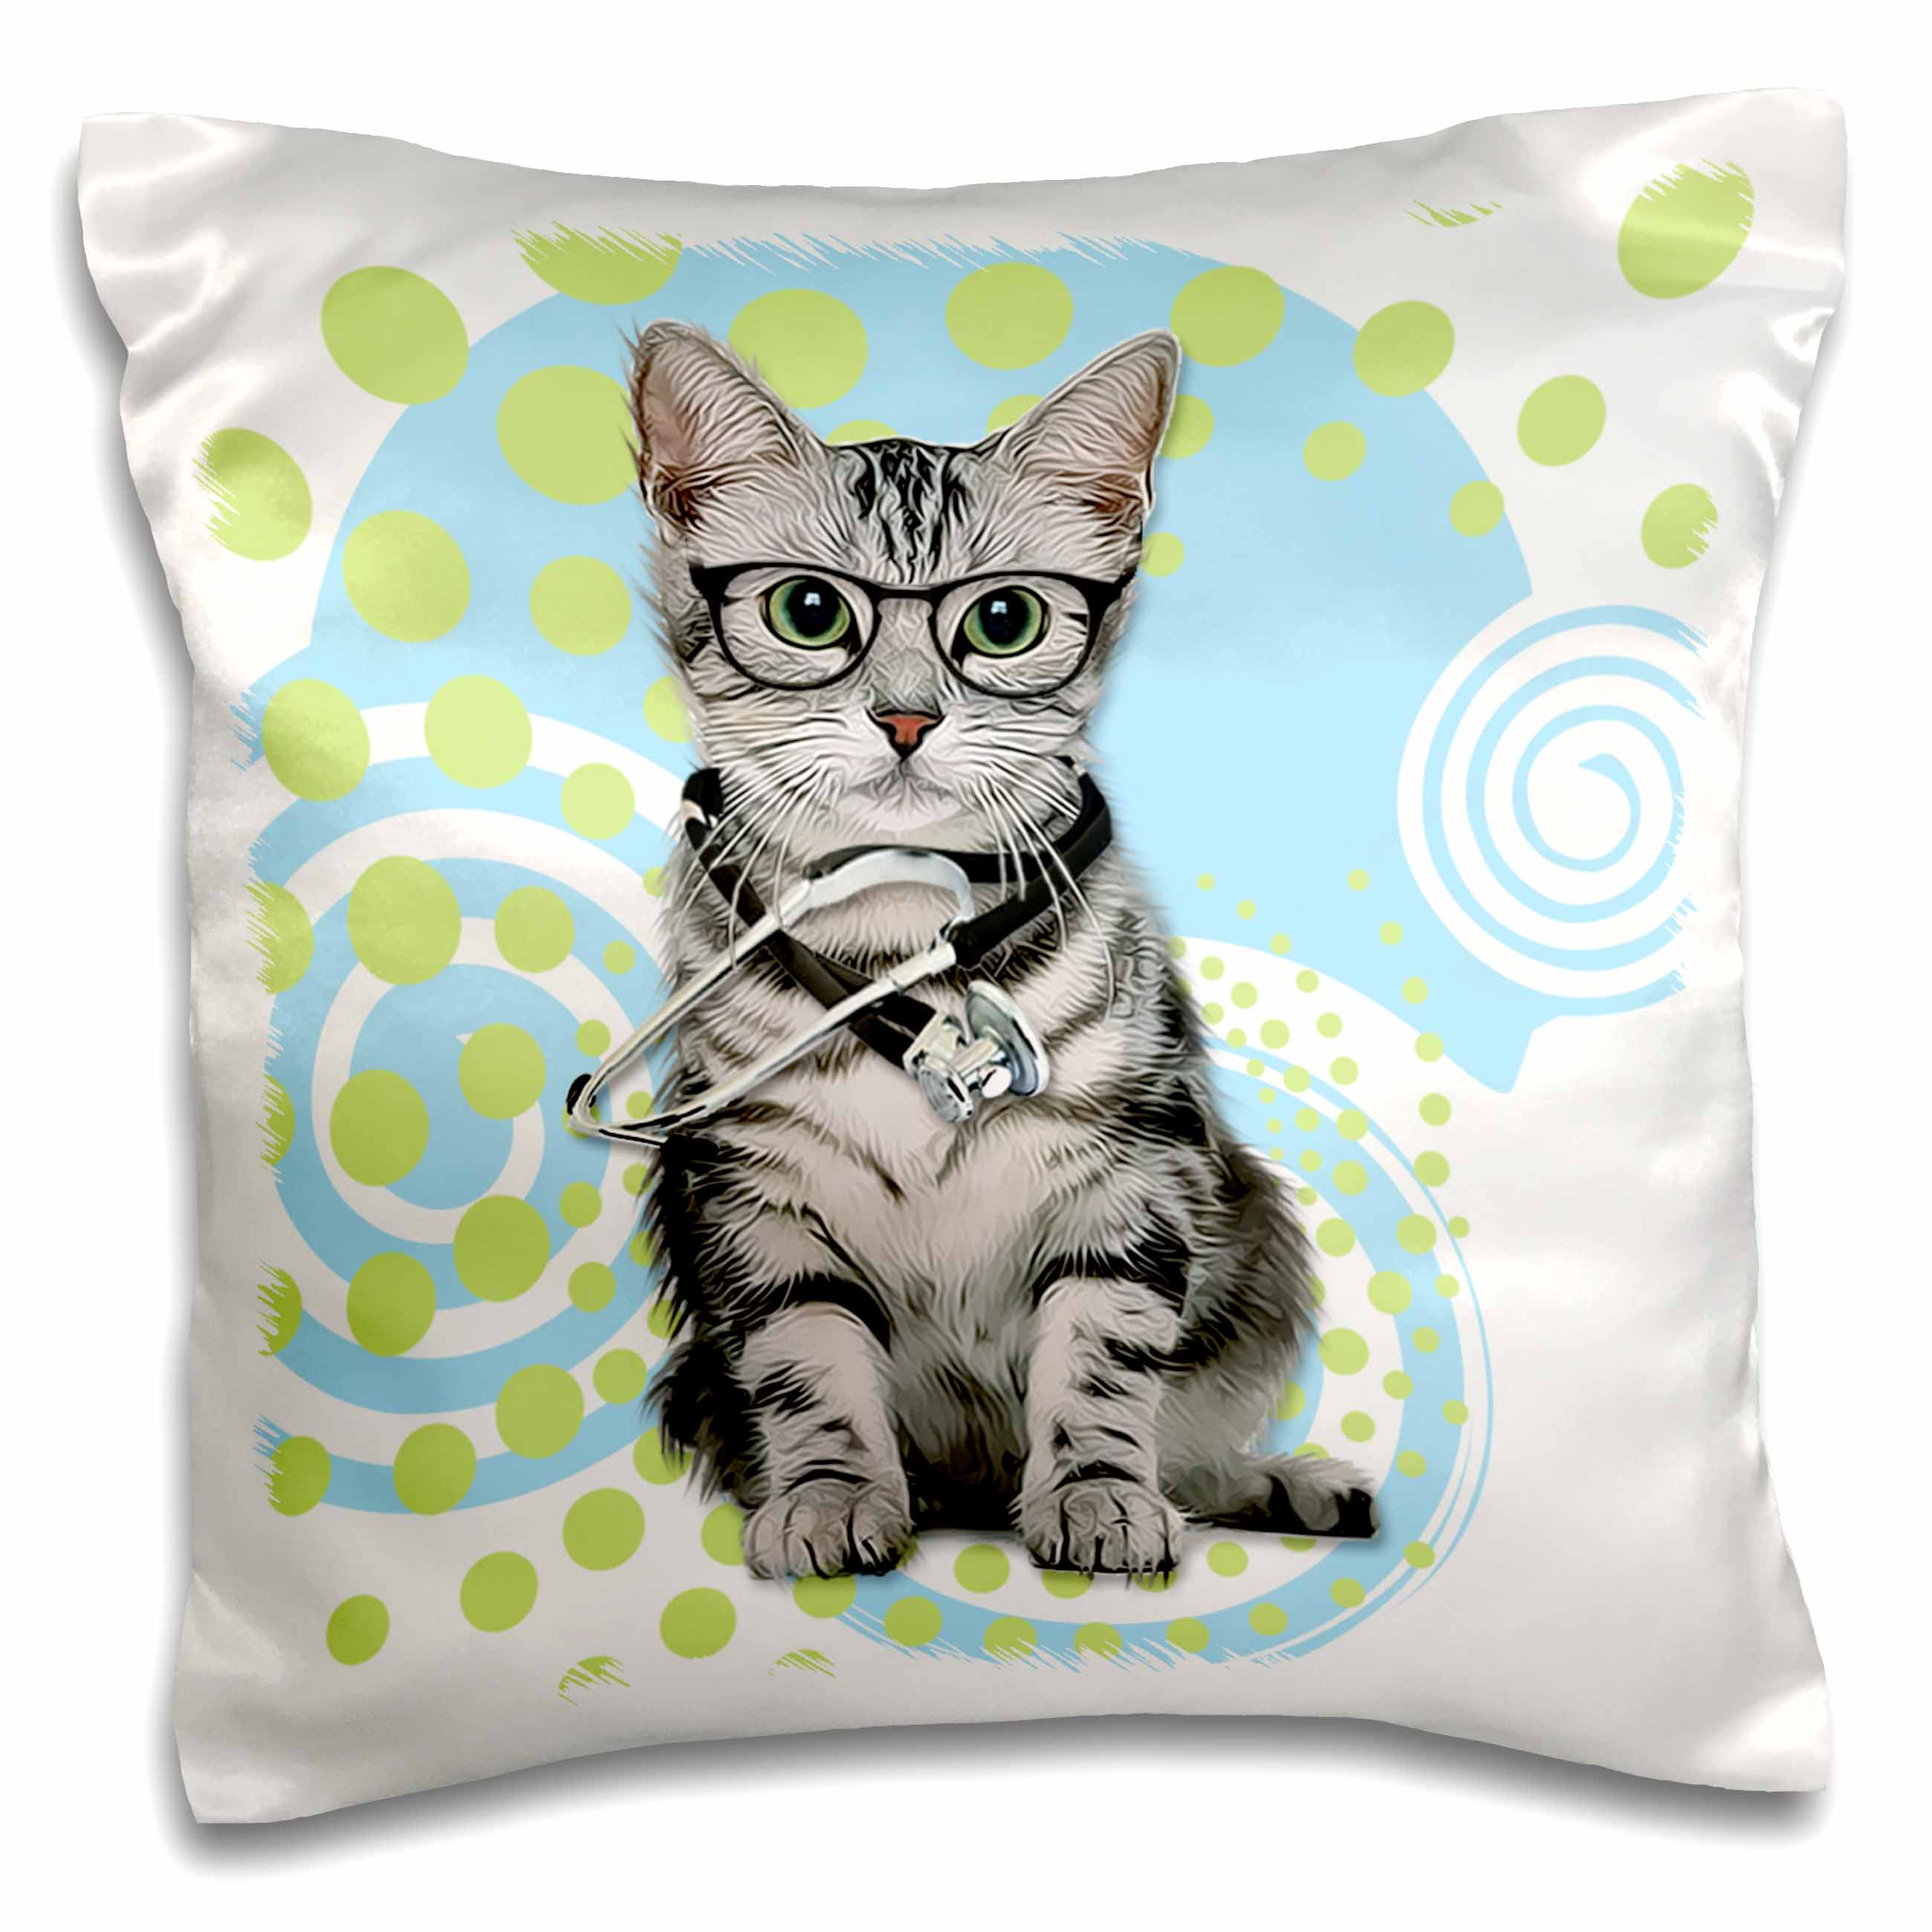 3dRose Silver Tabby Cat in Eyeglasses with a Stethoscope Doctor - Pillow Case, 16 by 16-inch